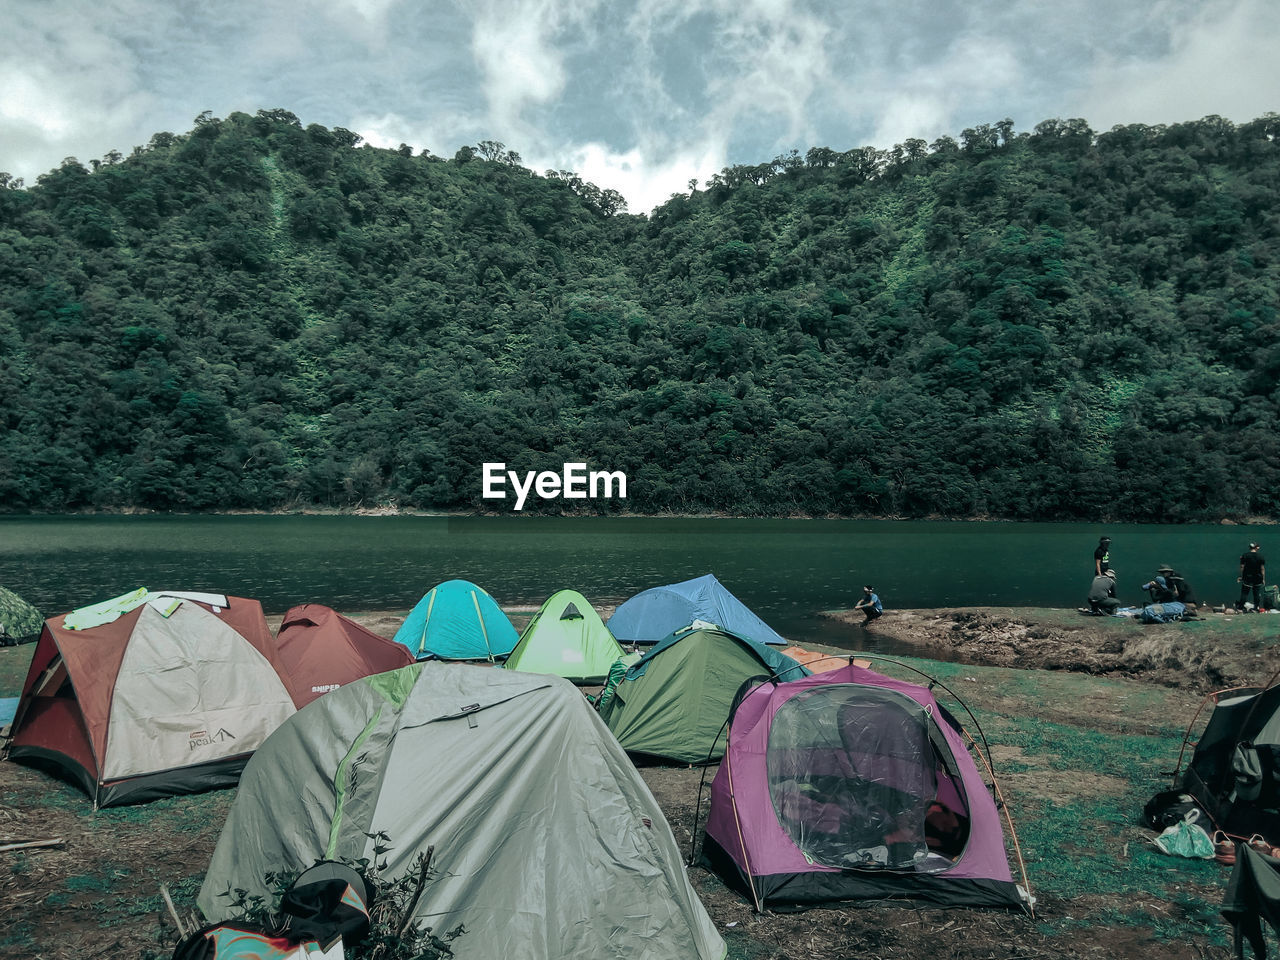 tree, plant, tent, camping, nature, sky, land, cloud - sky, day, green color, group of people, real people, forest, people, non-urban scene, beauty in nature, adventure, transportation, growth, shelter